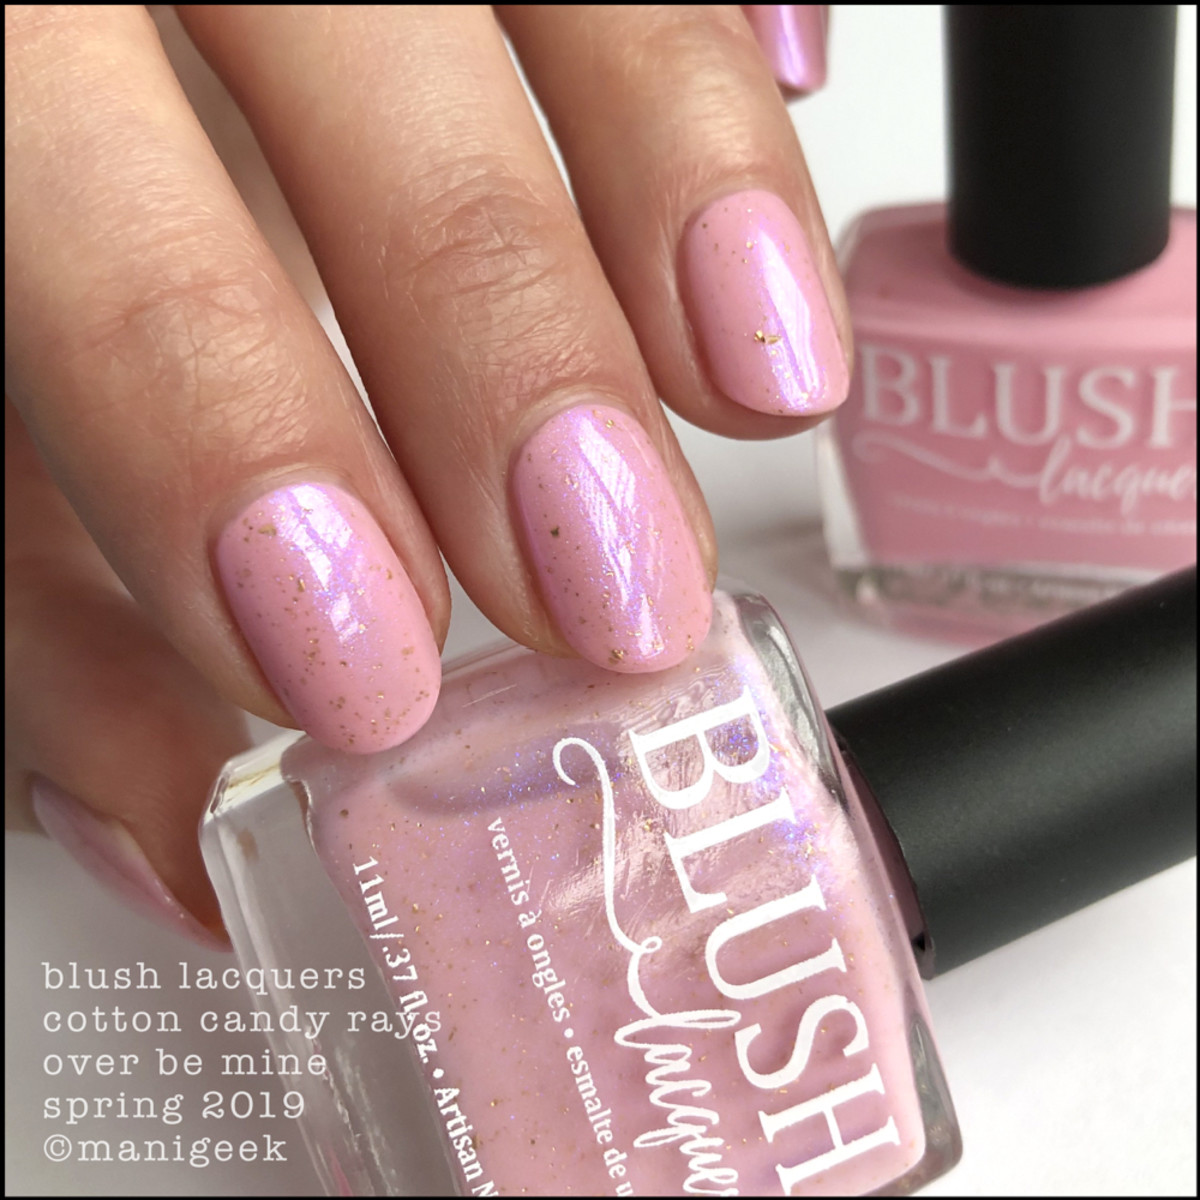 Blush Lacquers Cotton Candy Rays over Be Mine - Blush Lacquer Spring 2019